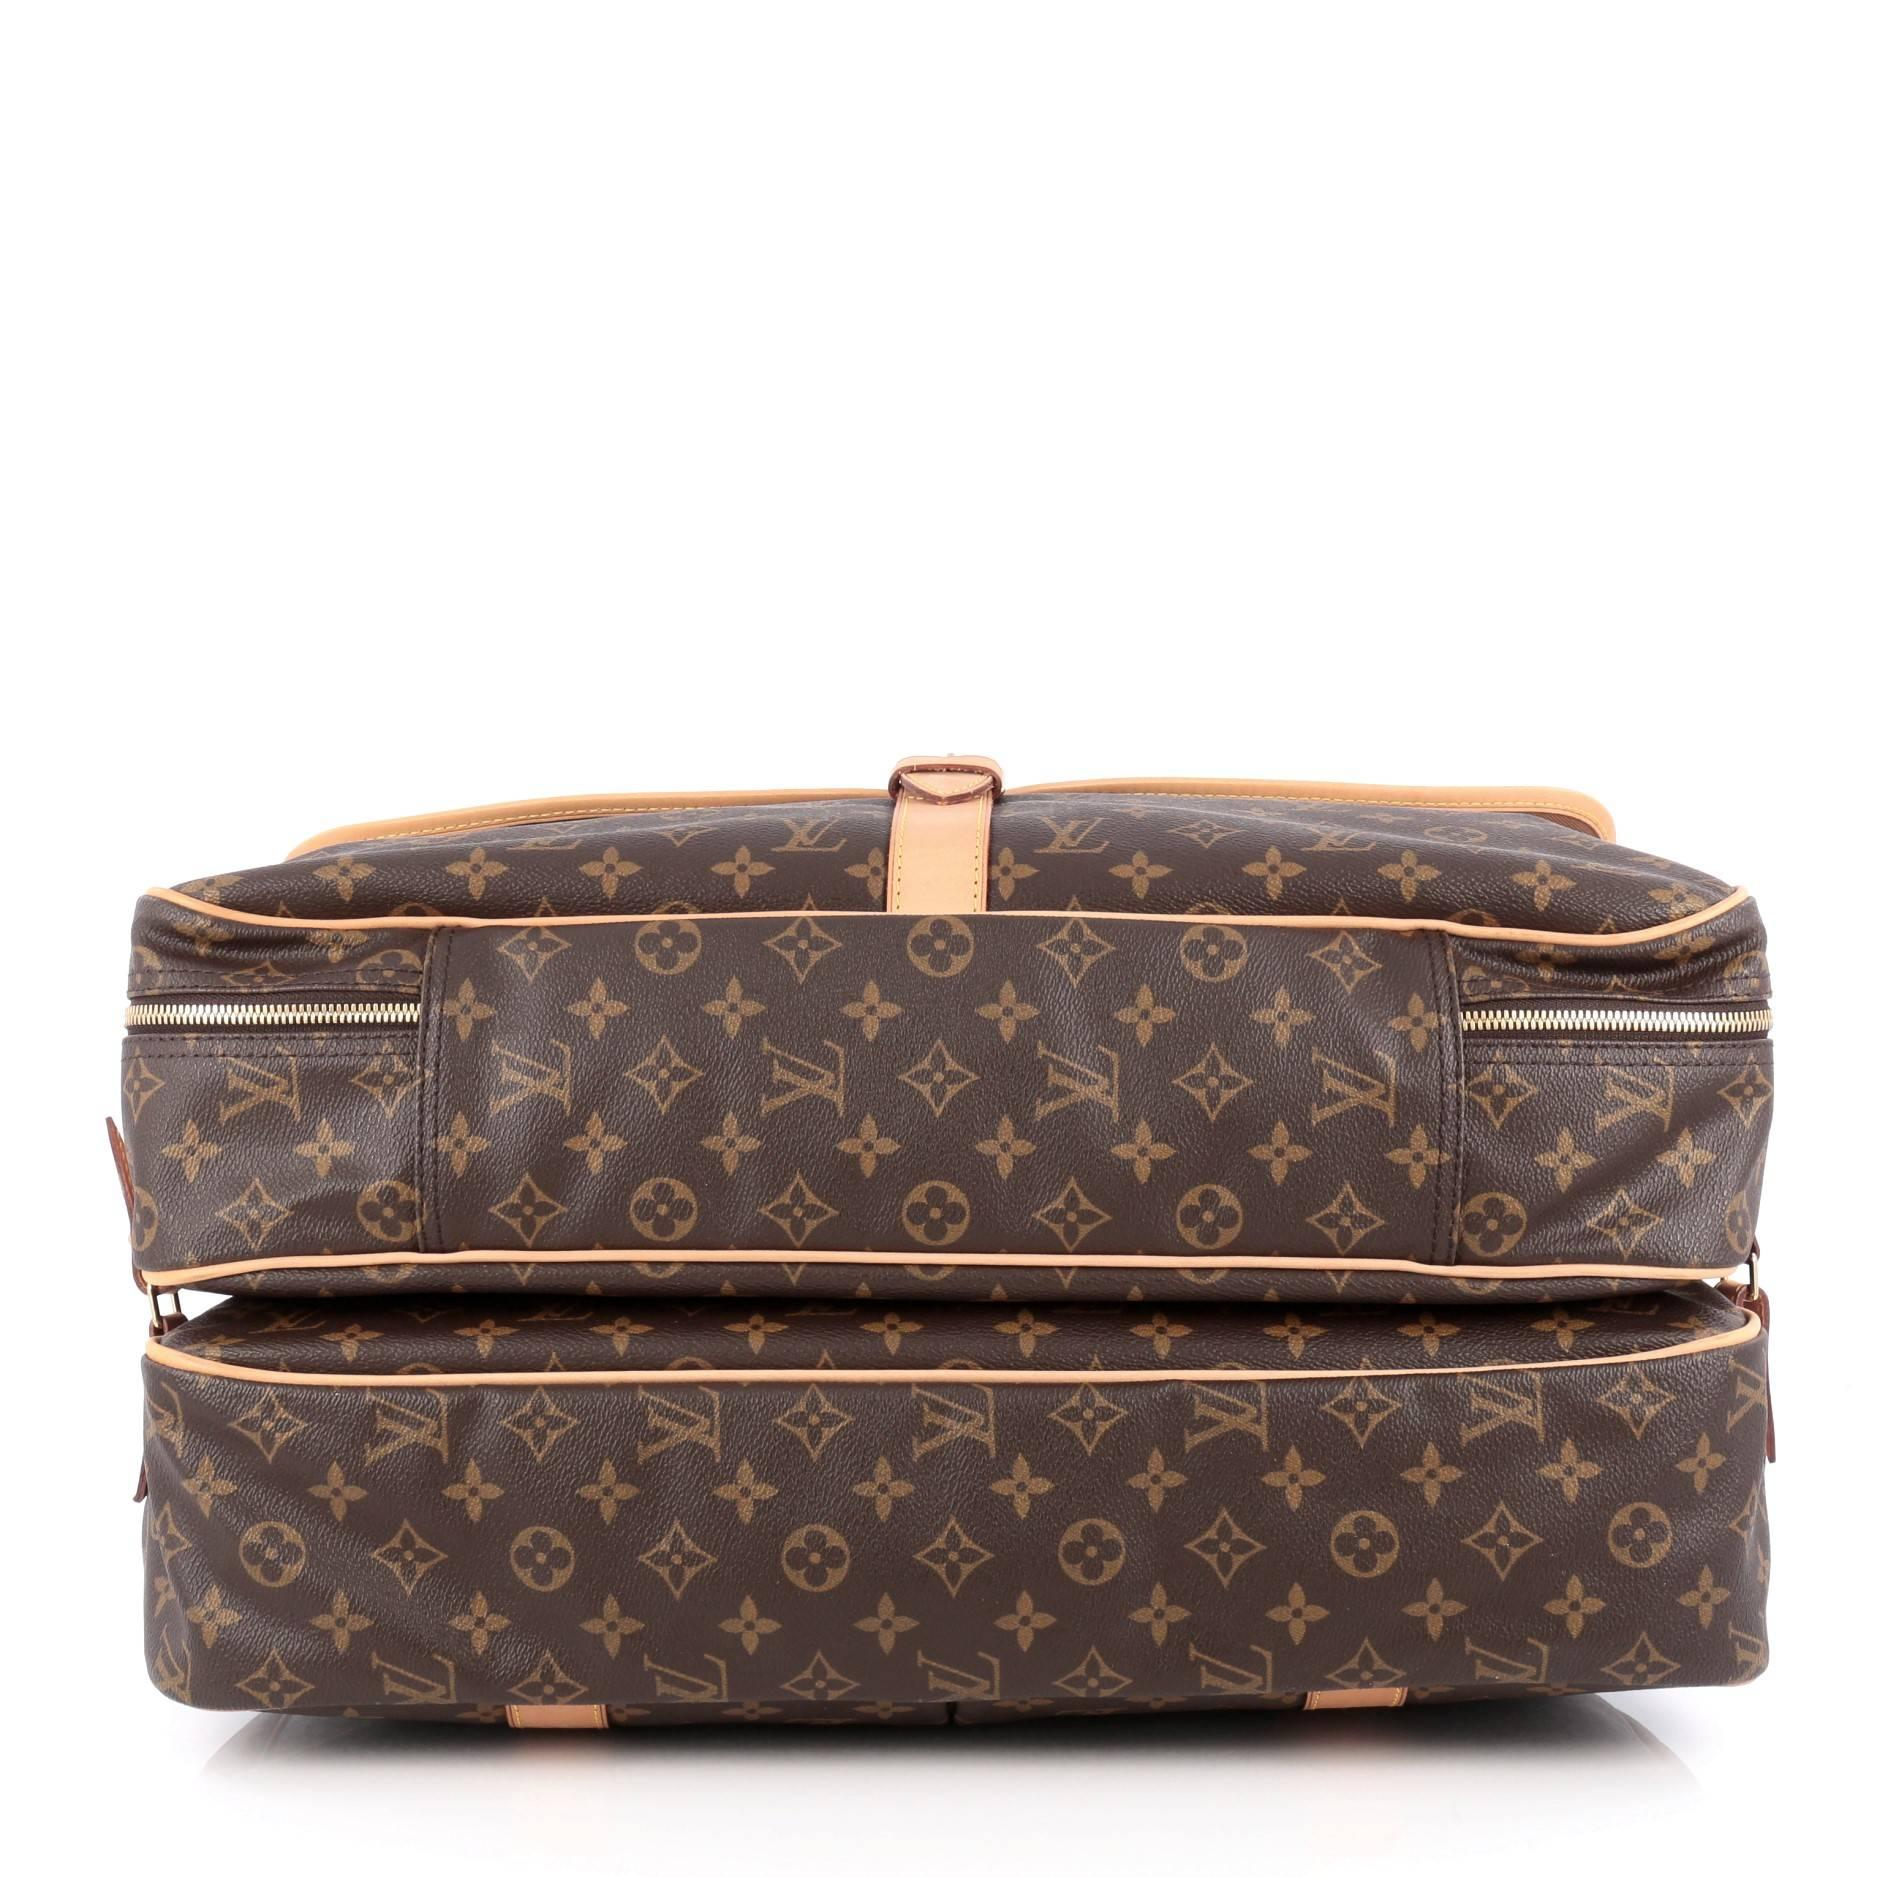 83ae29e29ab Louis Vuitton Sac Chasse Hunting Bag Monogram Canvas at 1stdibs